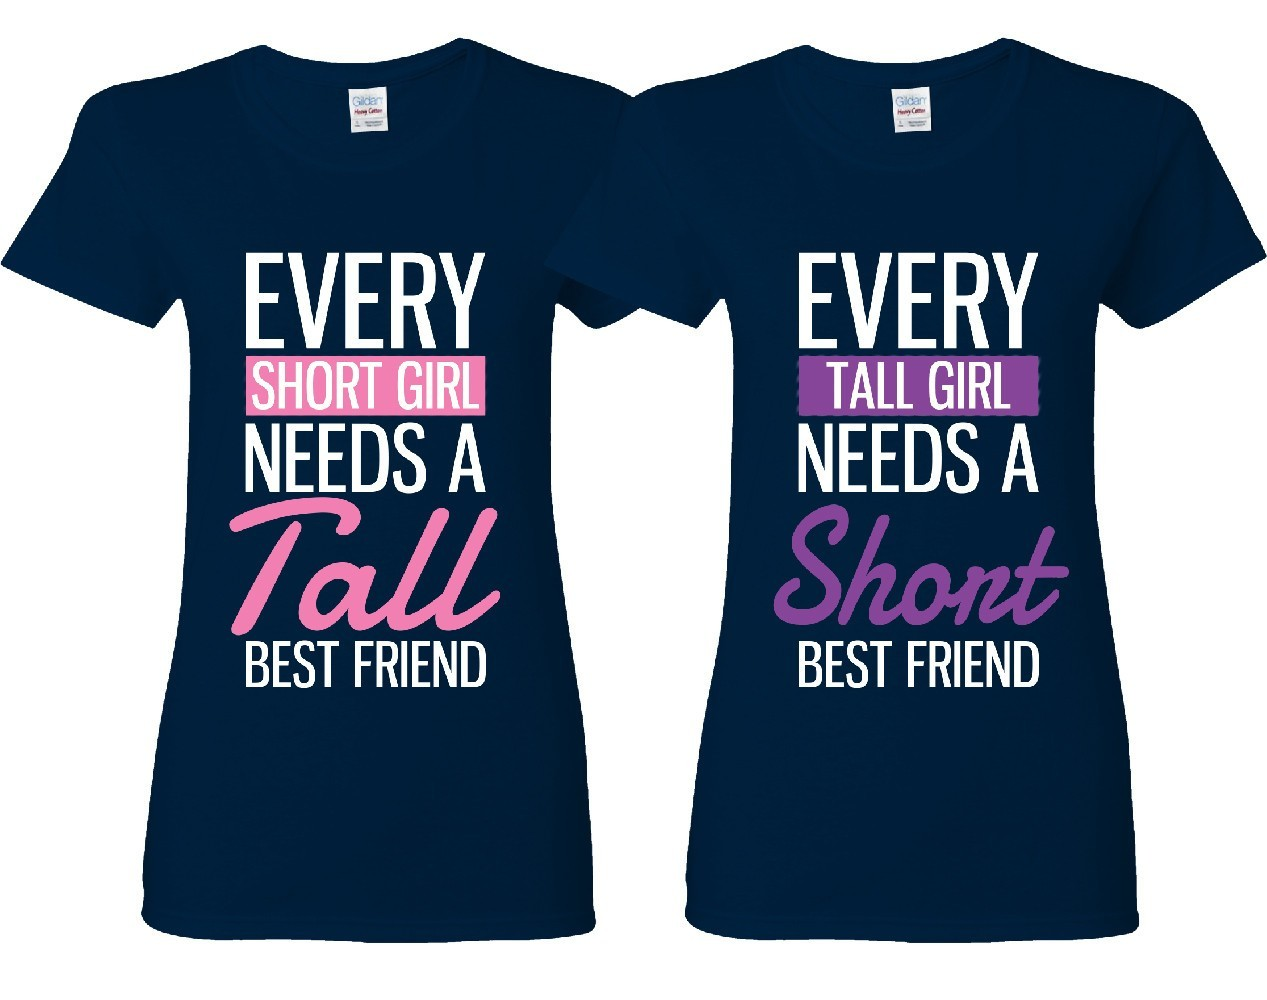 a2e0f1df2 Every Short and Every Tall Girl BFFS T-shirts